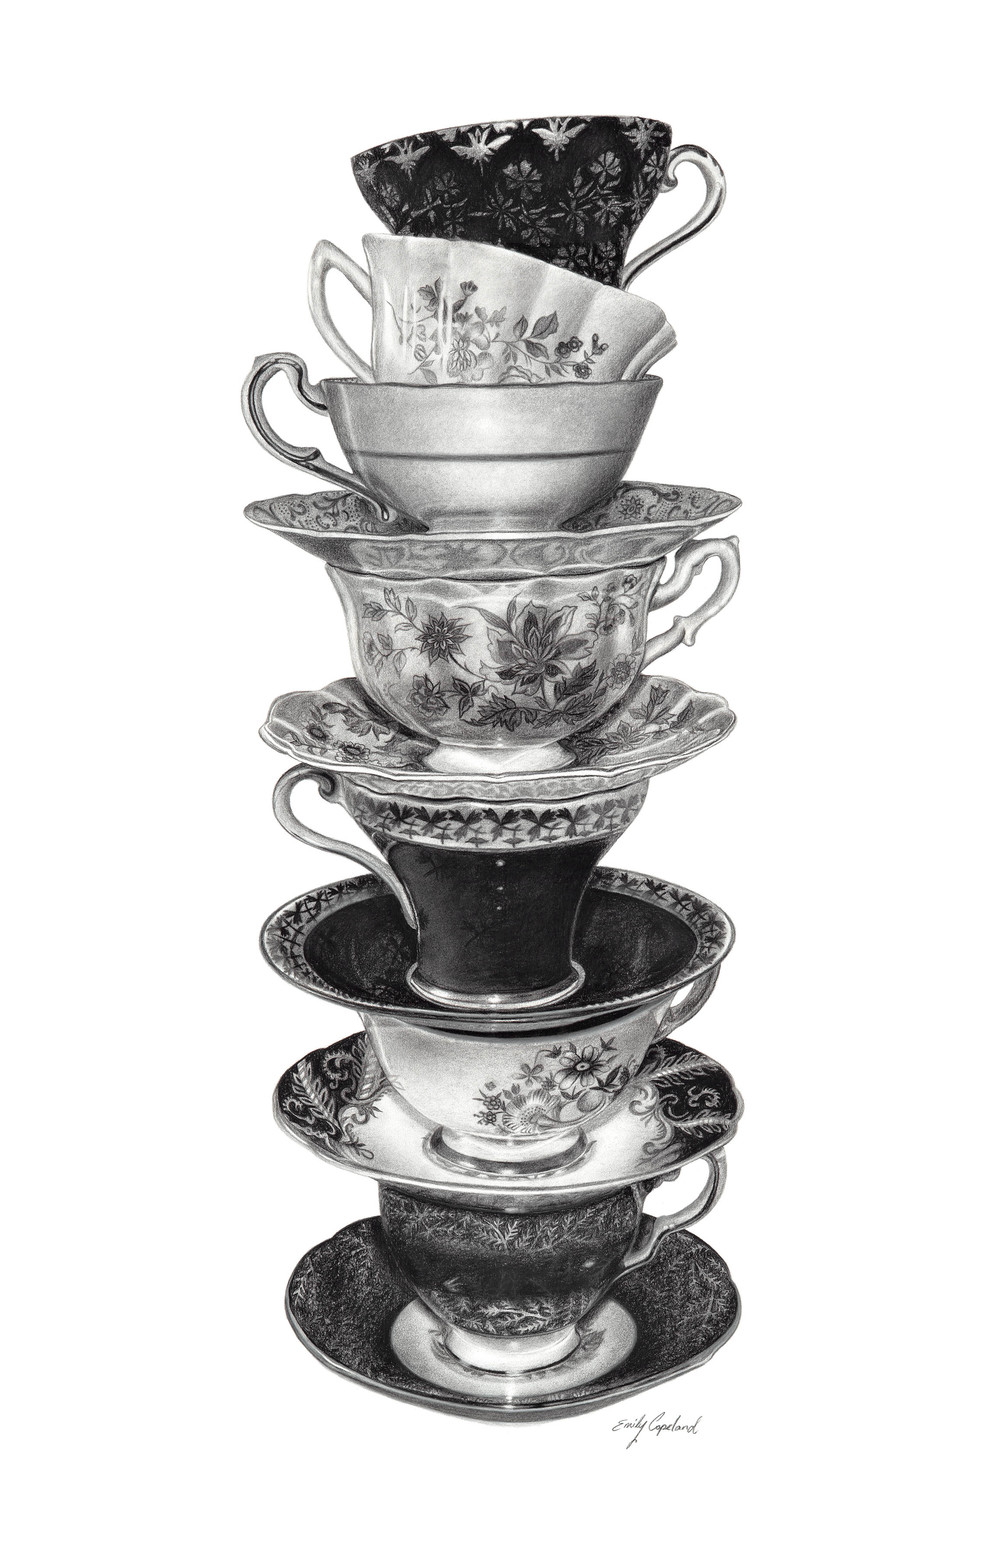 Charcoal Drawing of a Stack of Teacups